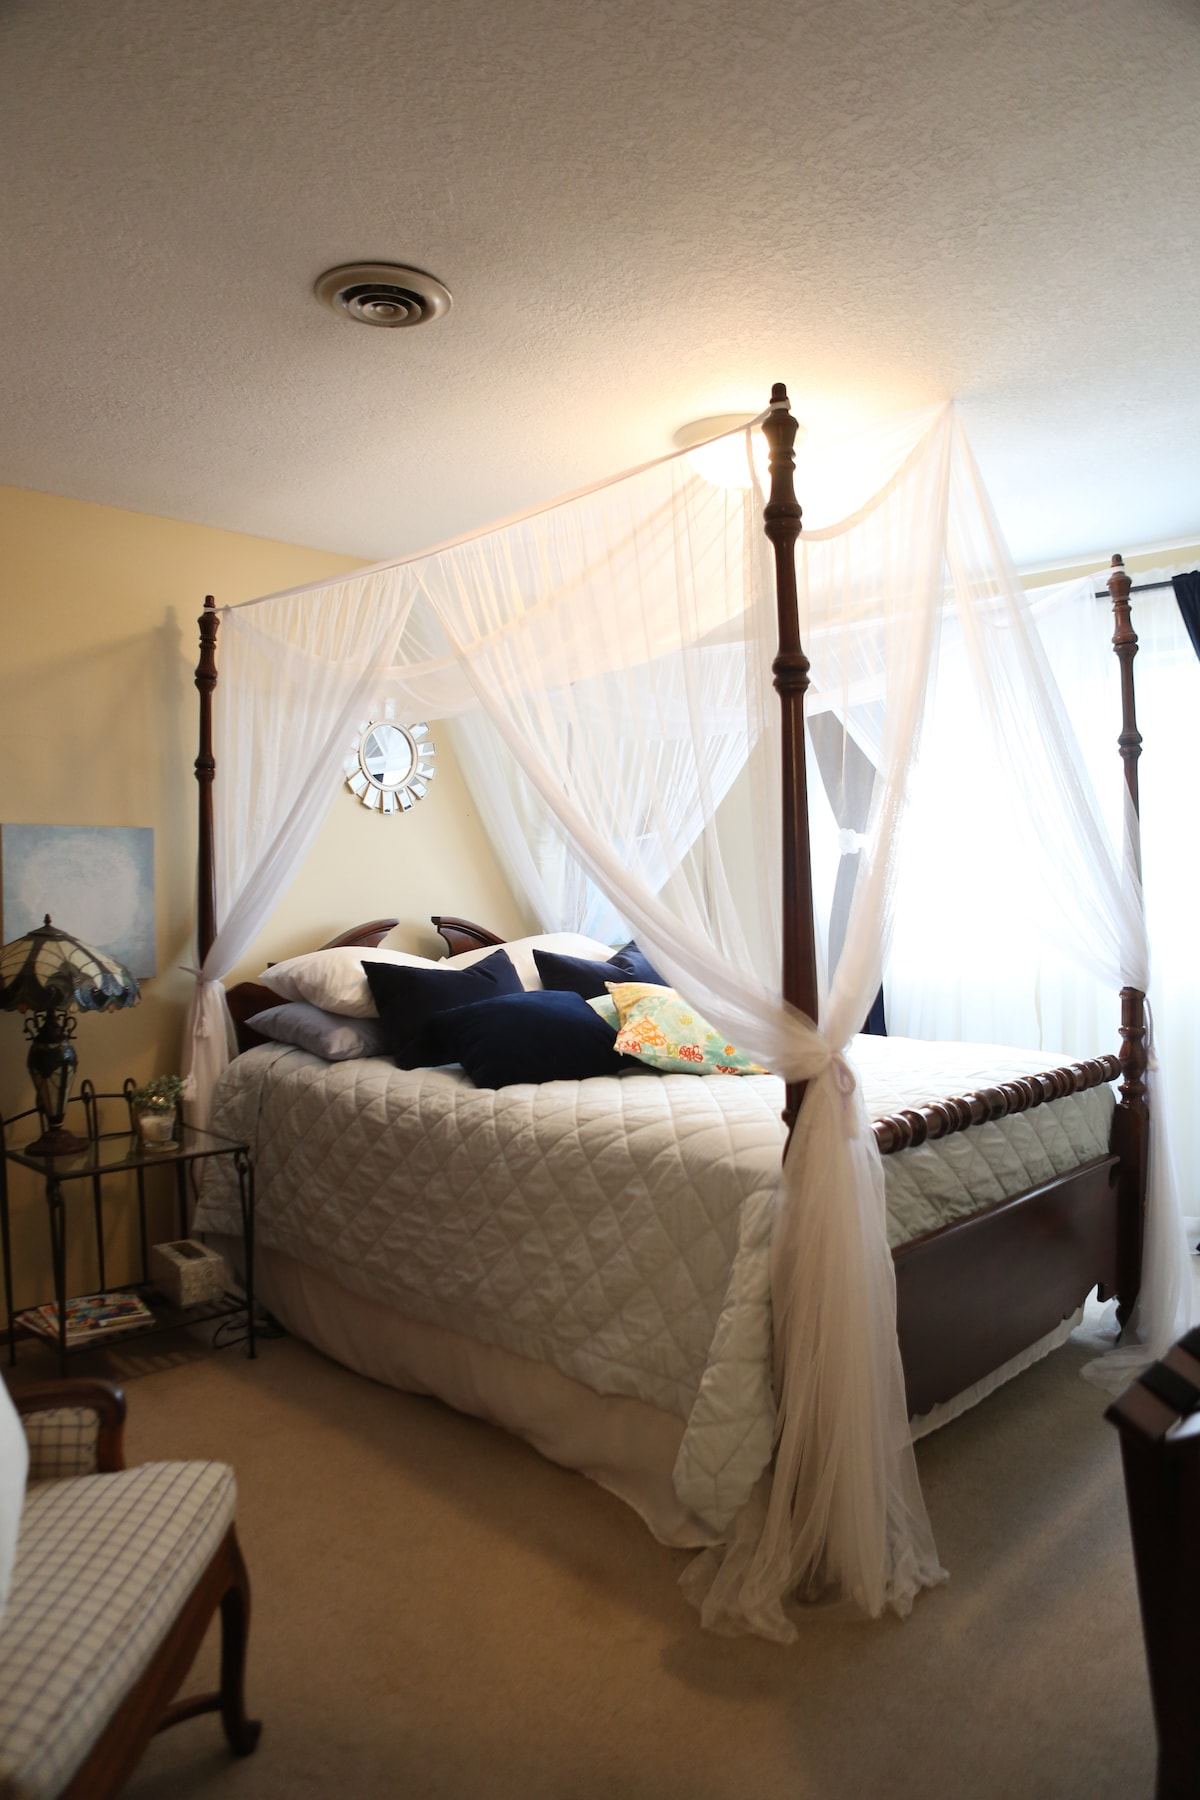 Your canopy retreat!